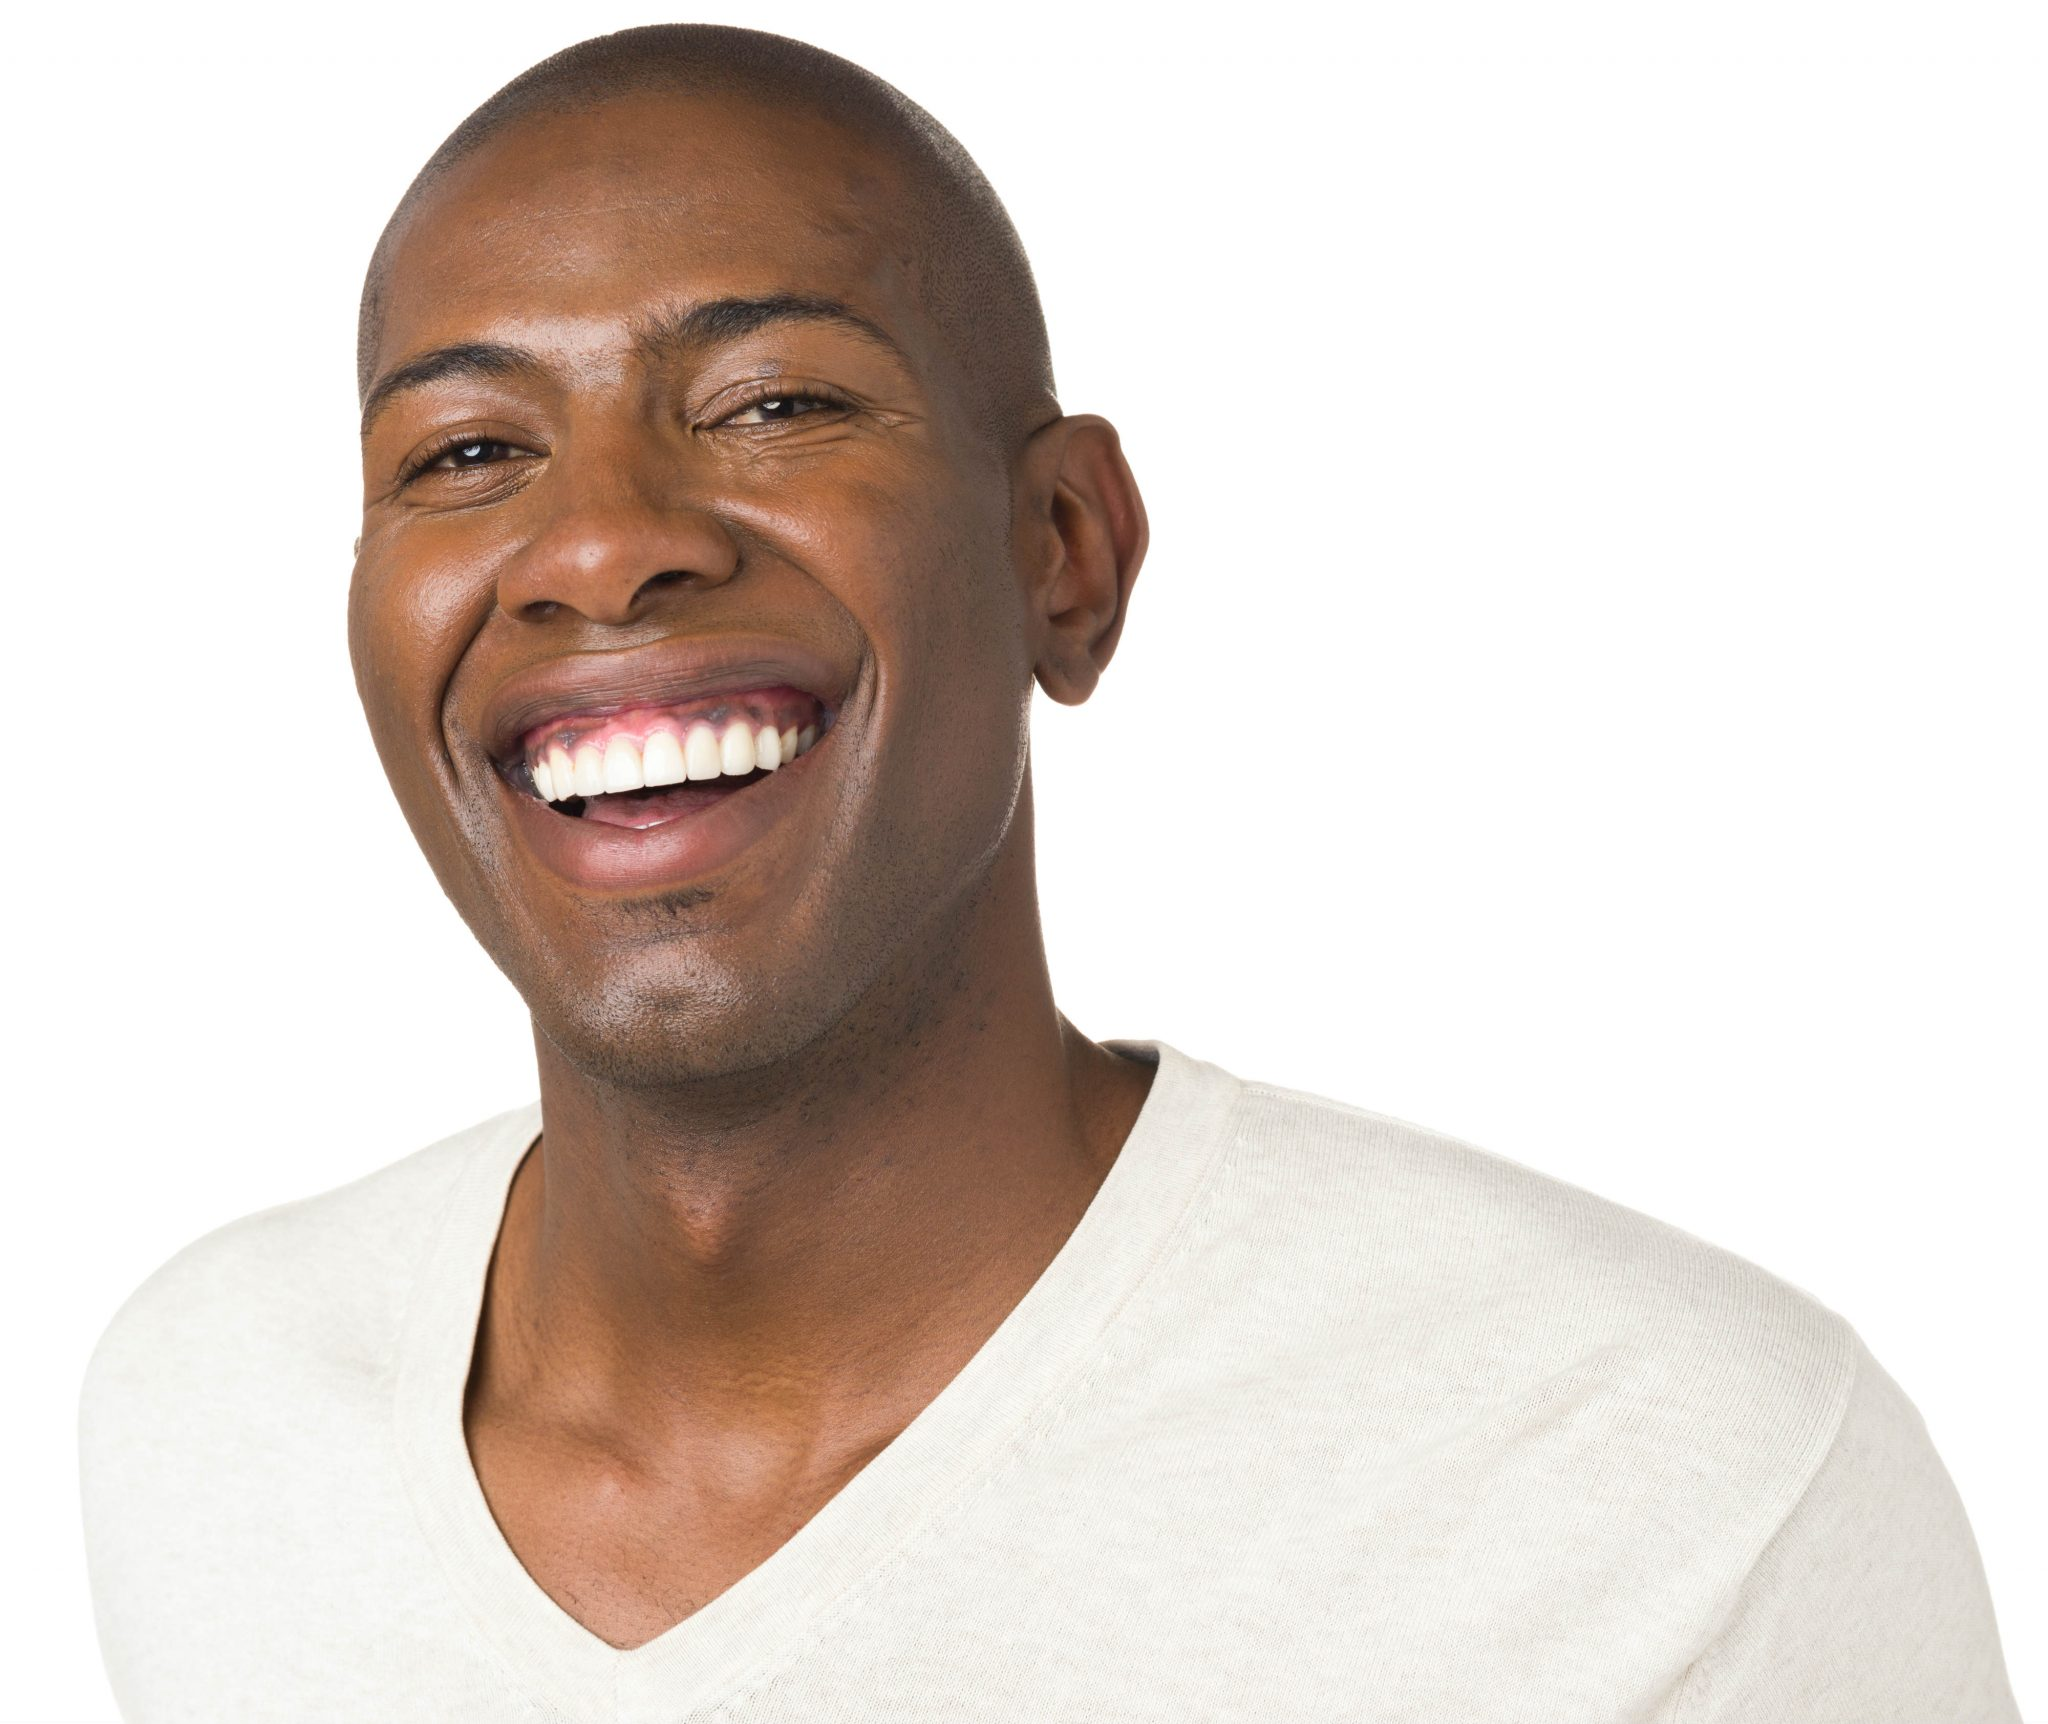 man happily smiling with porcelain veneers